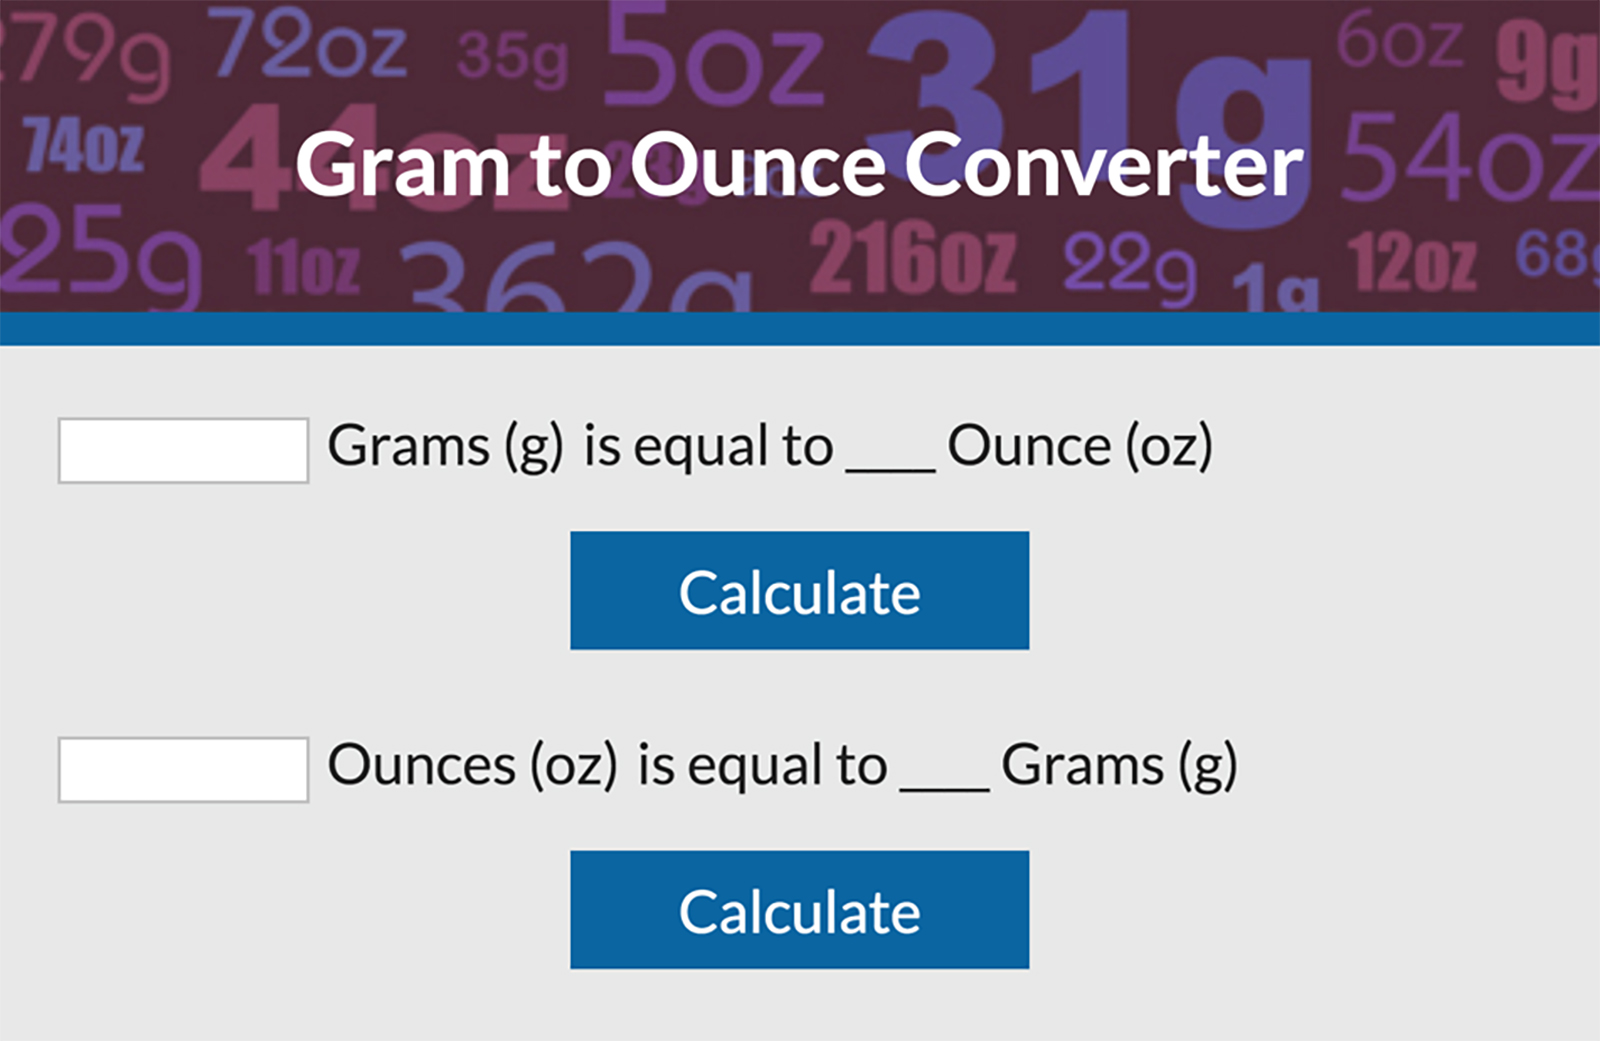 Convert Grams To Ounces Lovetoknow